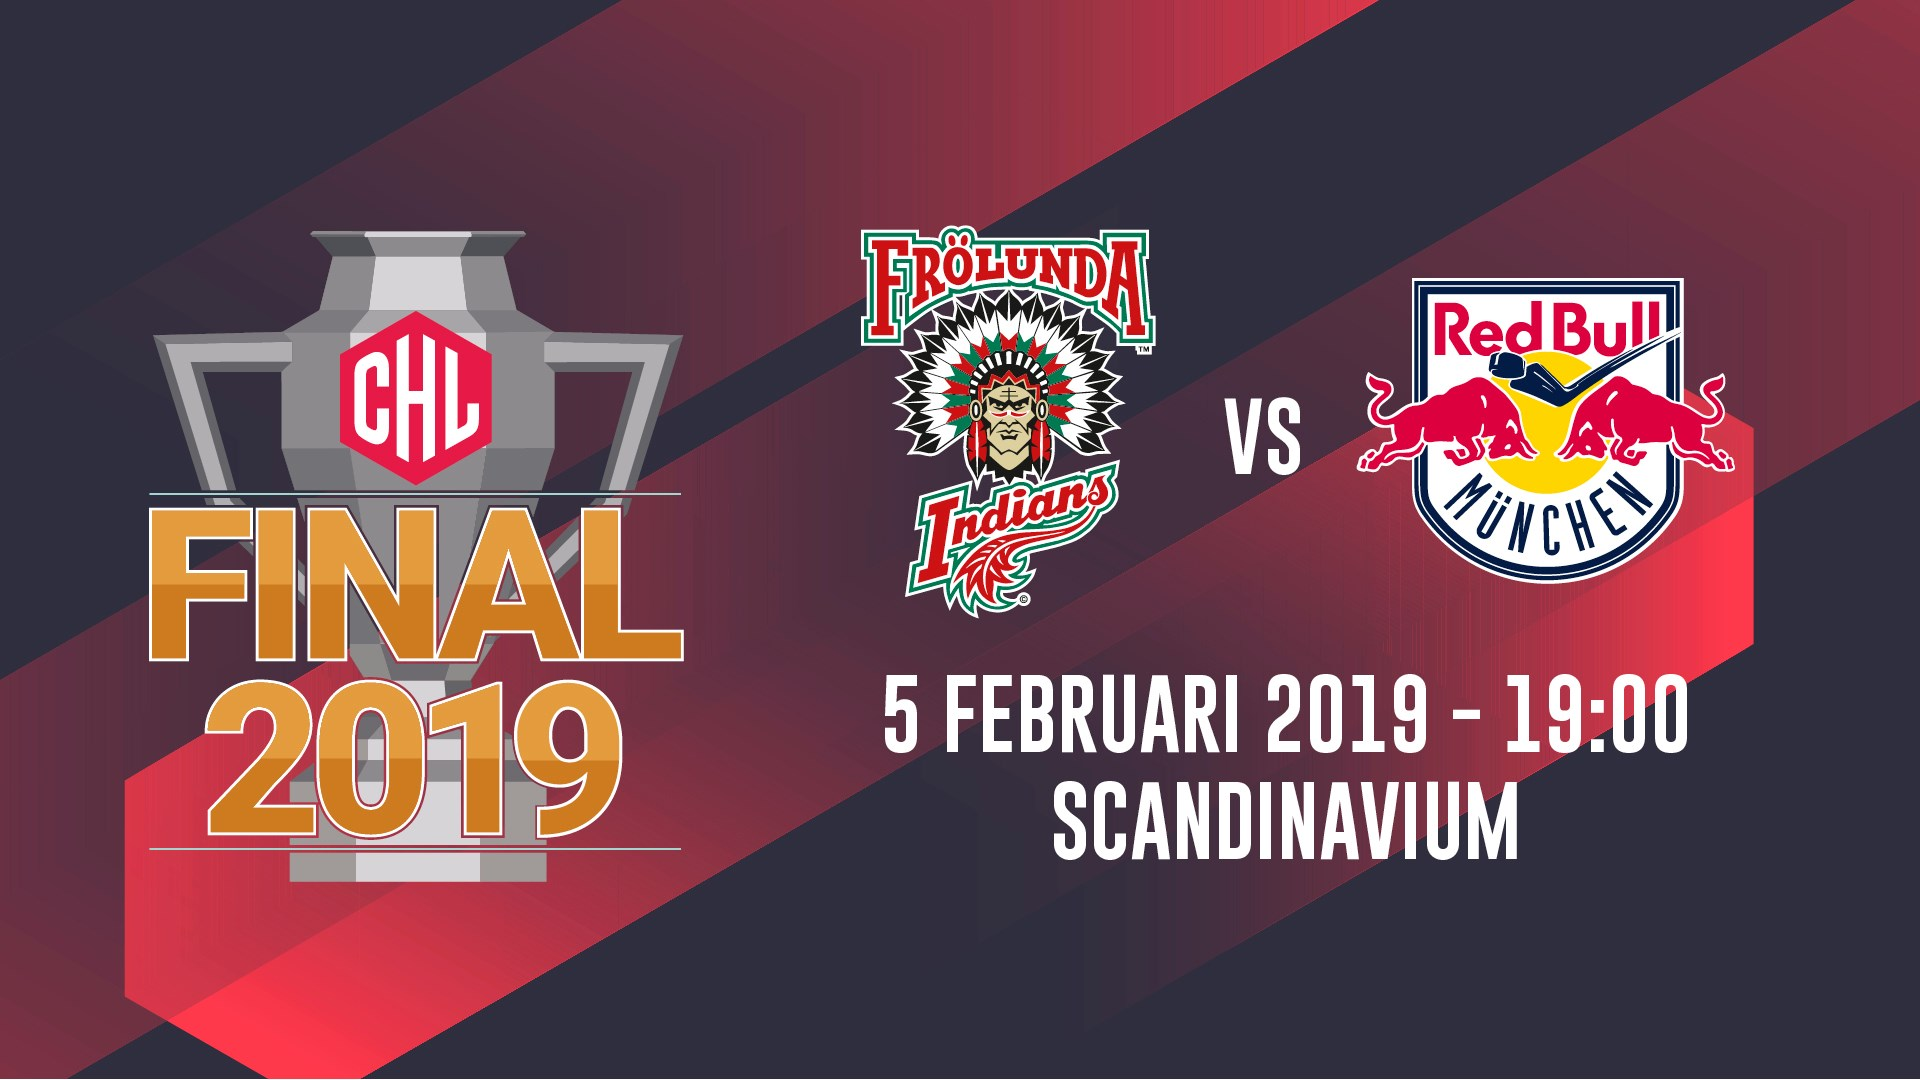 Frölunda vs Red Bull München - CHL Final